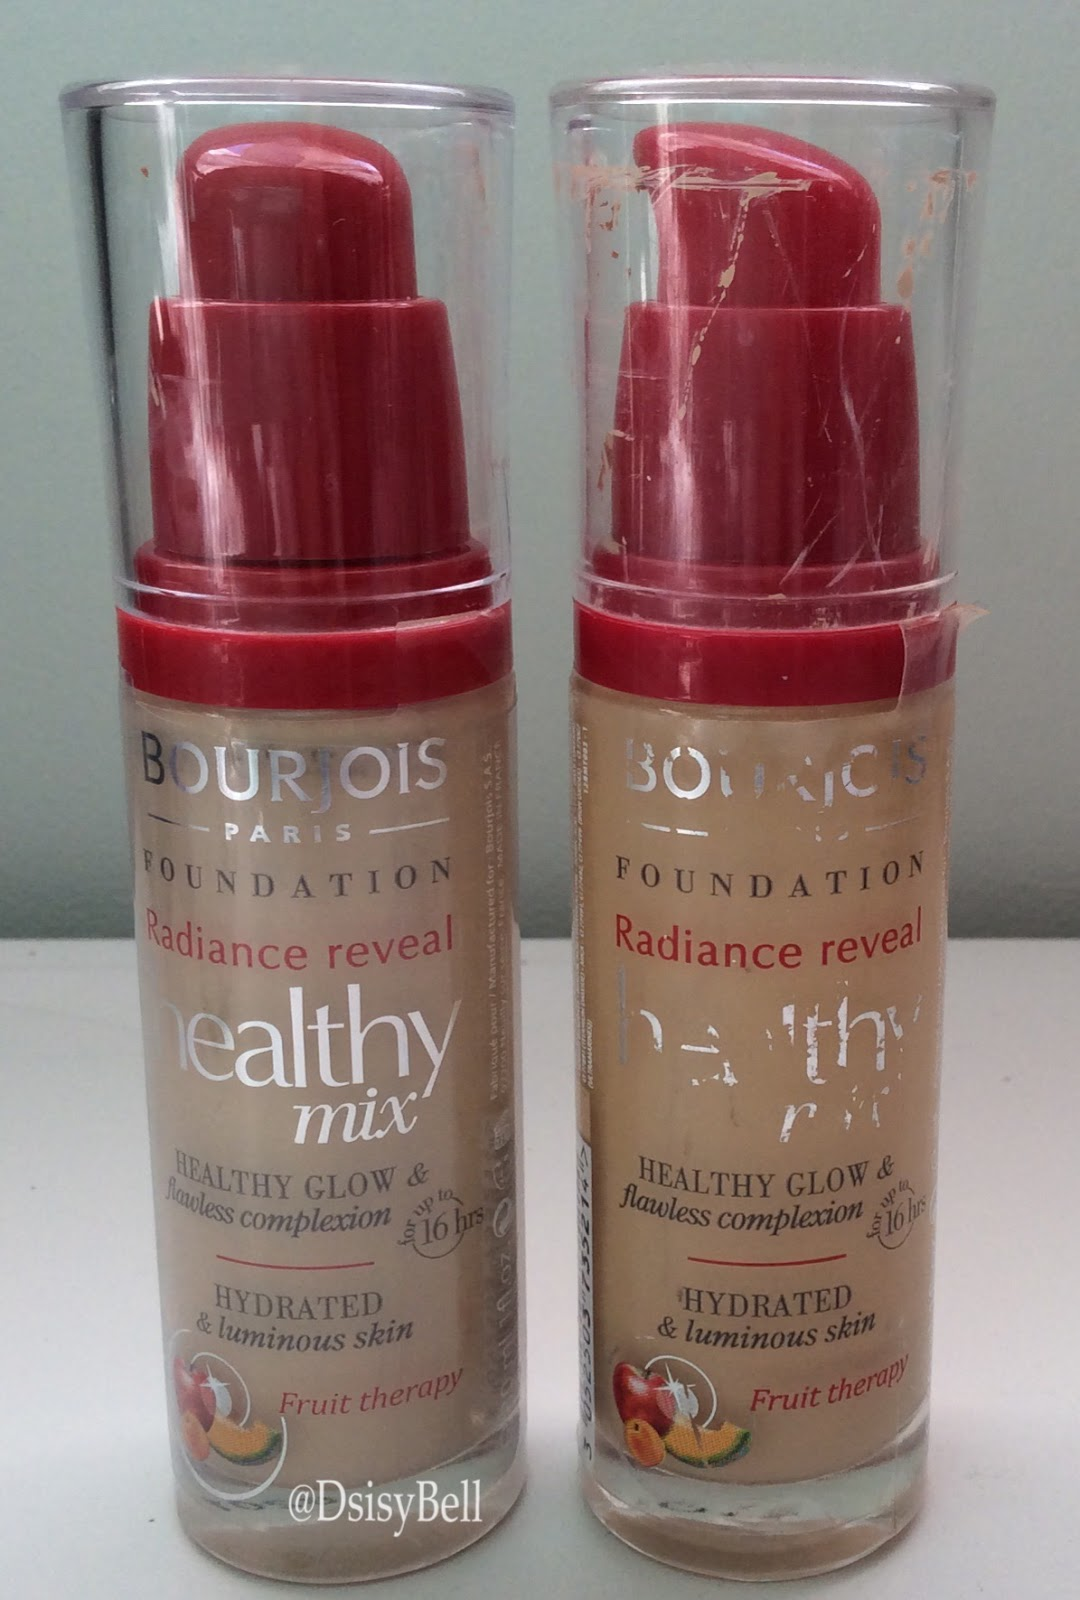 Daisybell: Foundation Favourites - Bourjois Healthy Mix Foundation swatch andreview